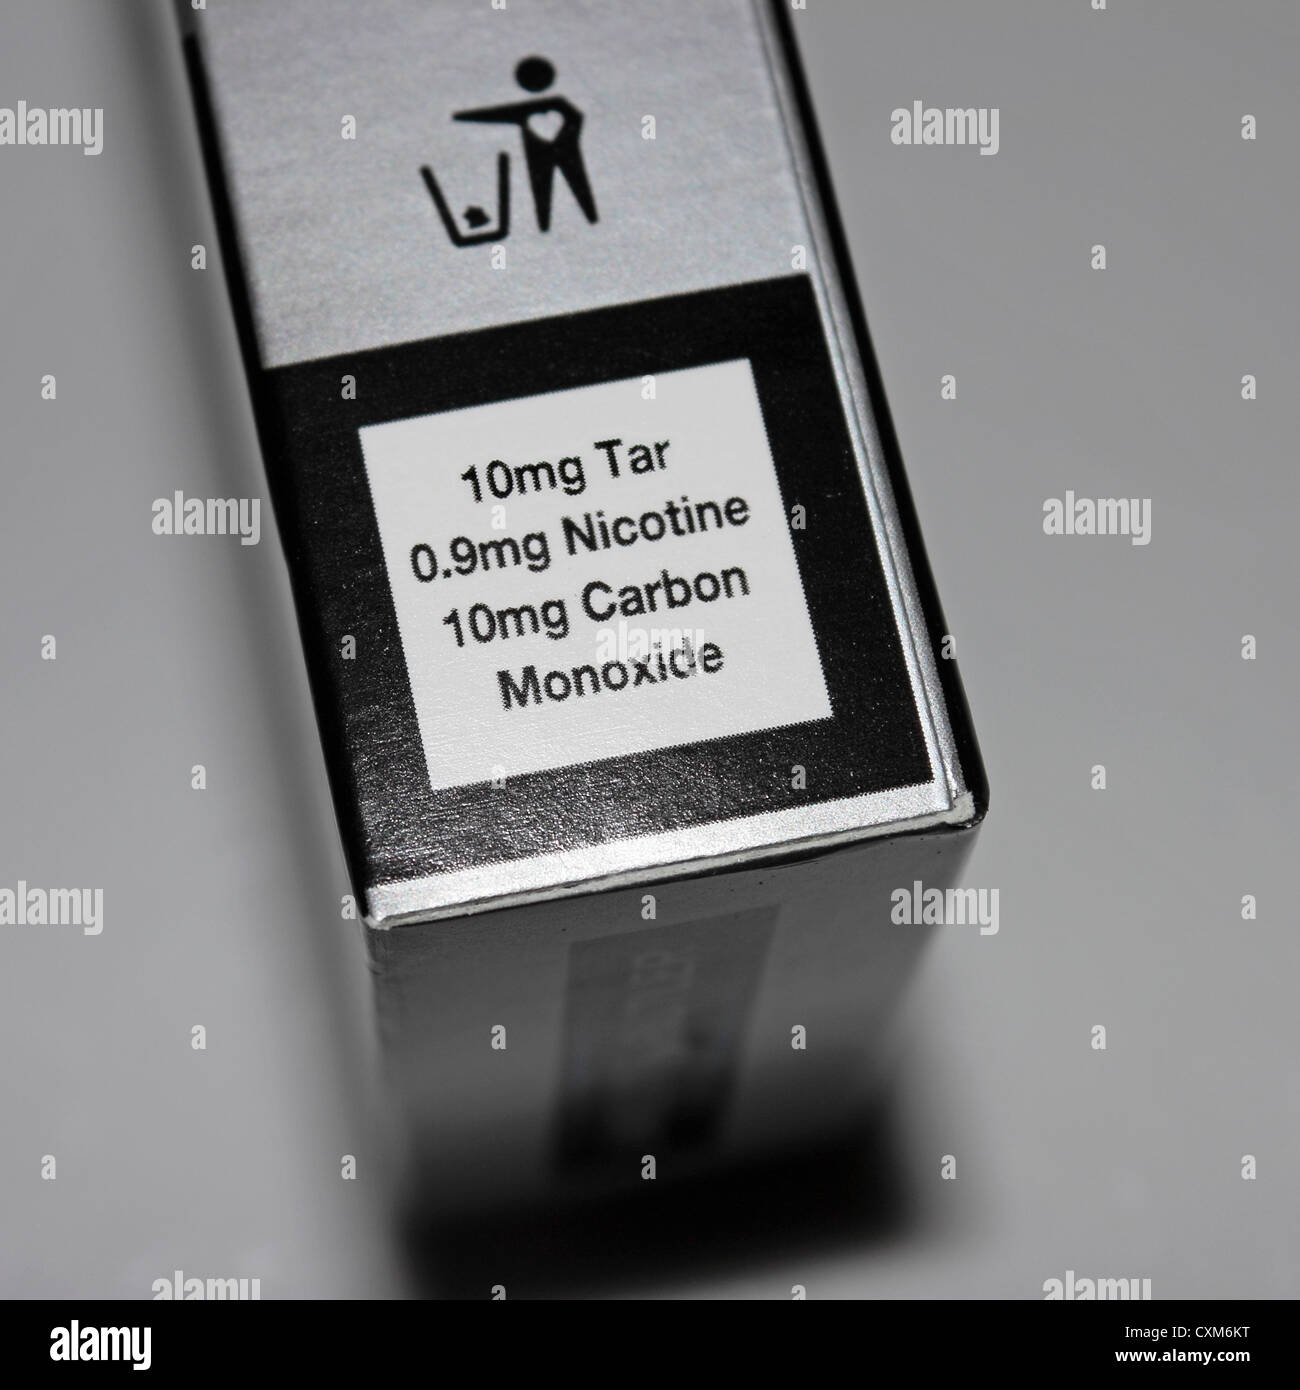 Cigarette packet content information 10mg Tar, 0.9mg Nicotine, 10mg Carbon Monoxide - Stock Image